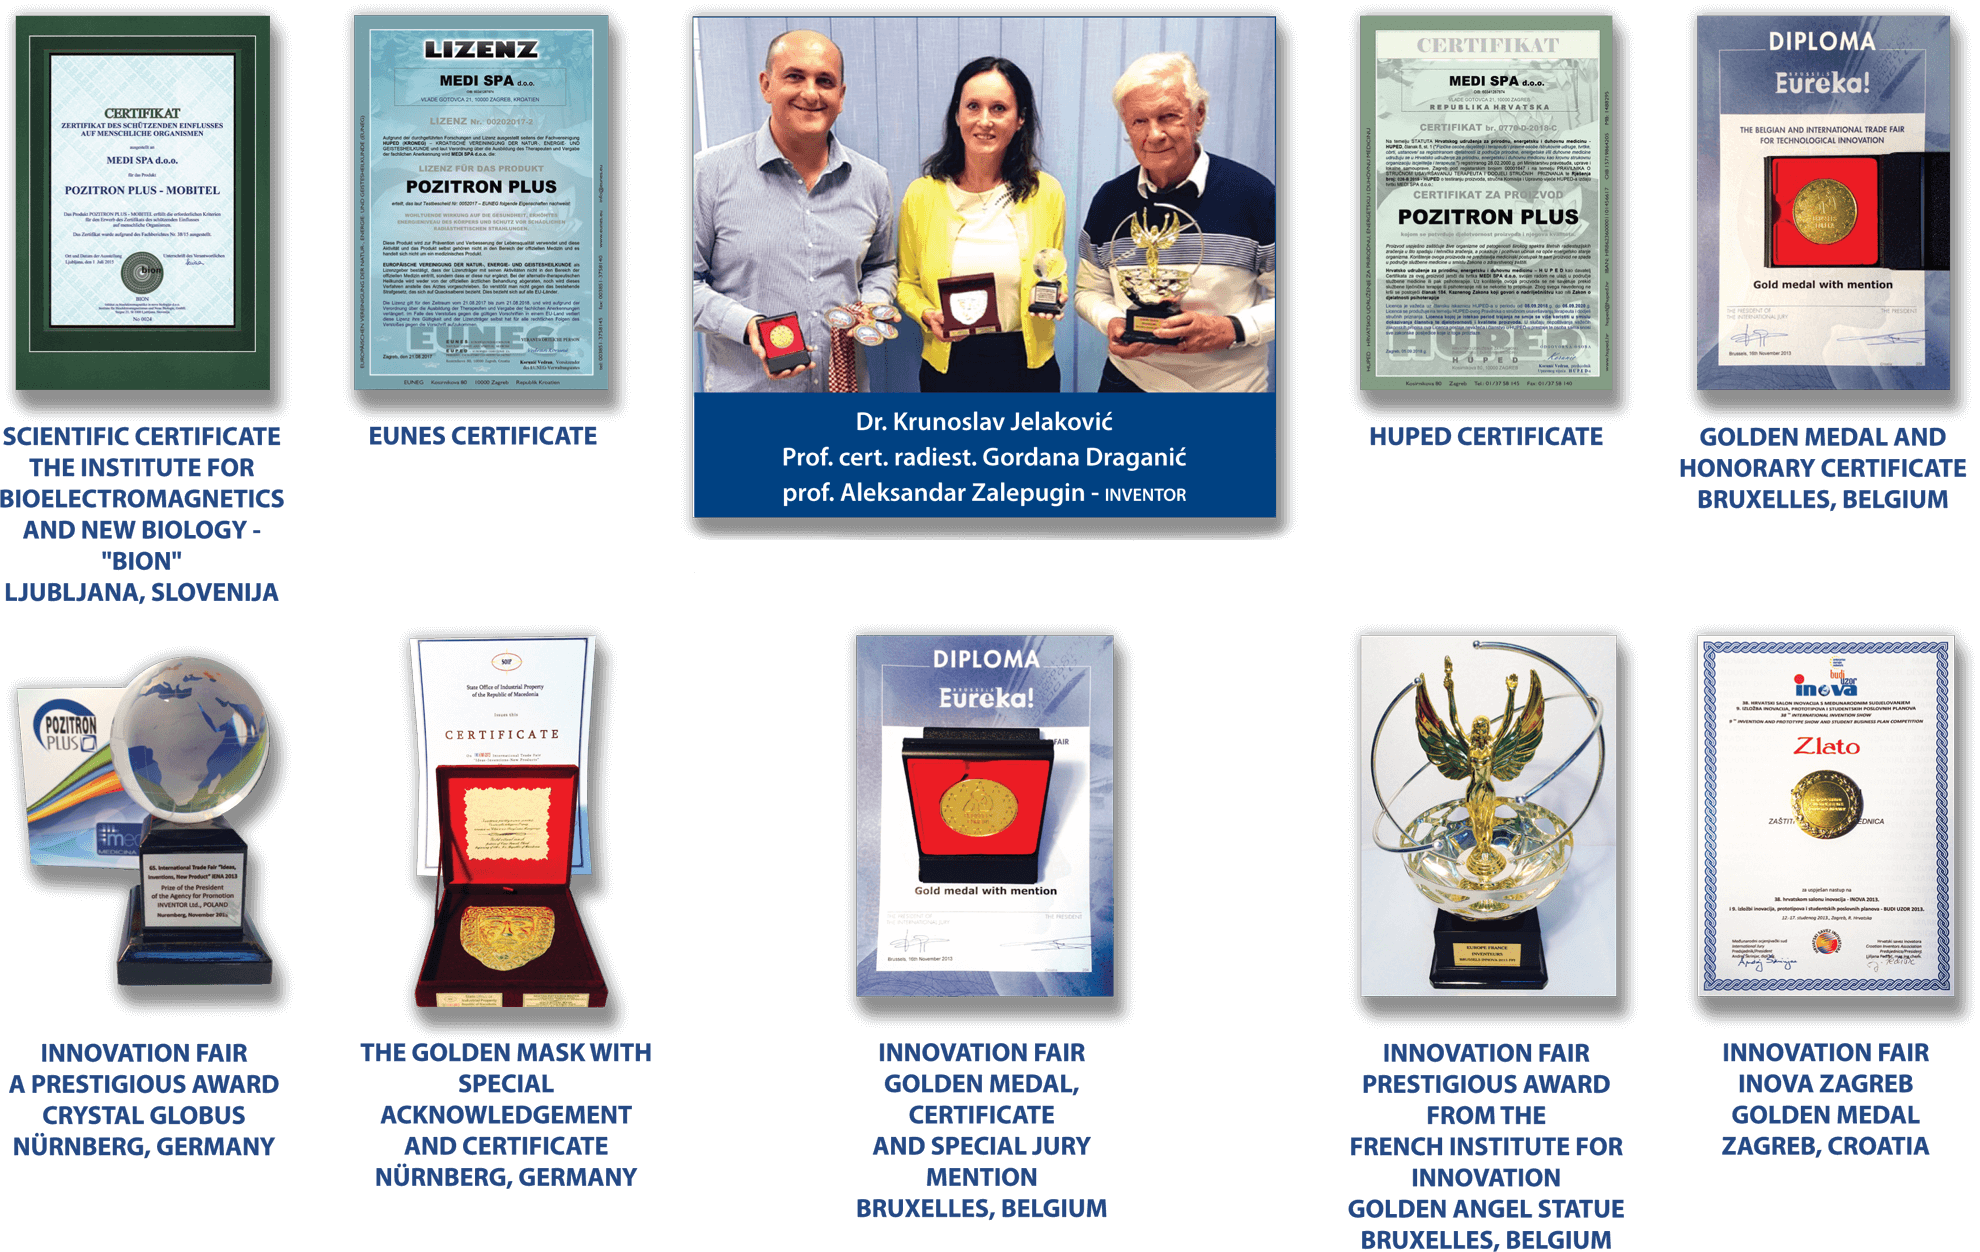 Pozitron Plus Awards